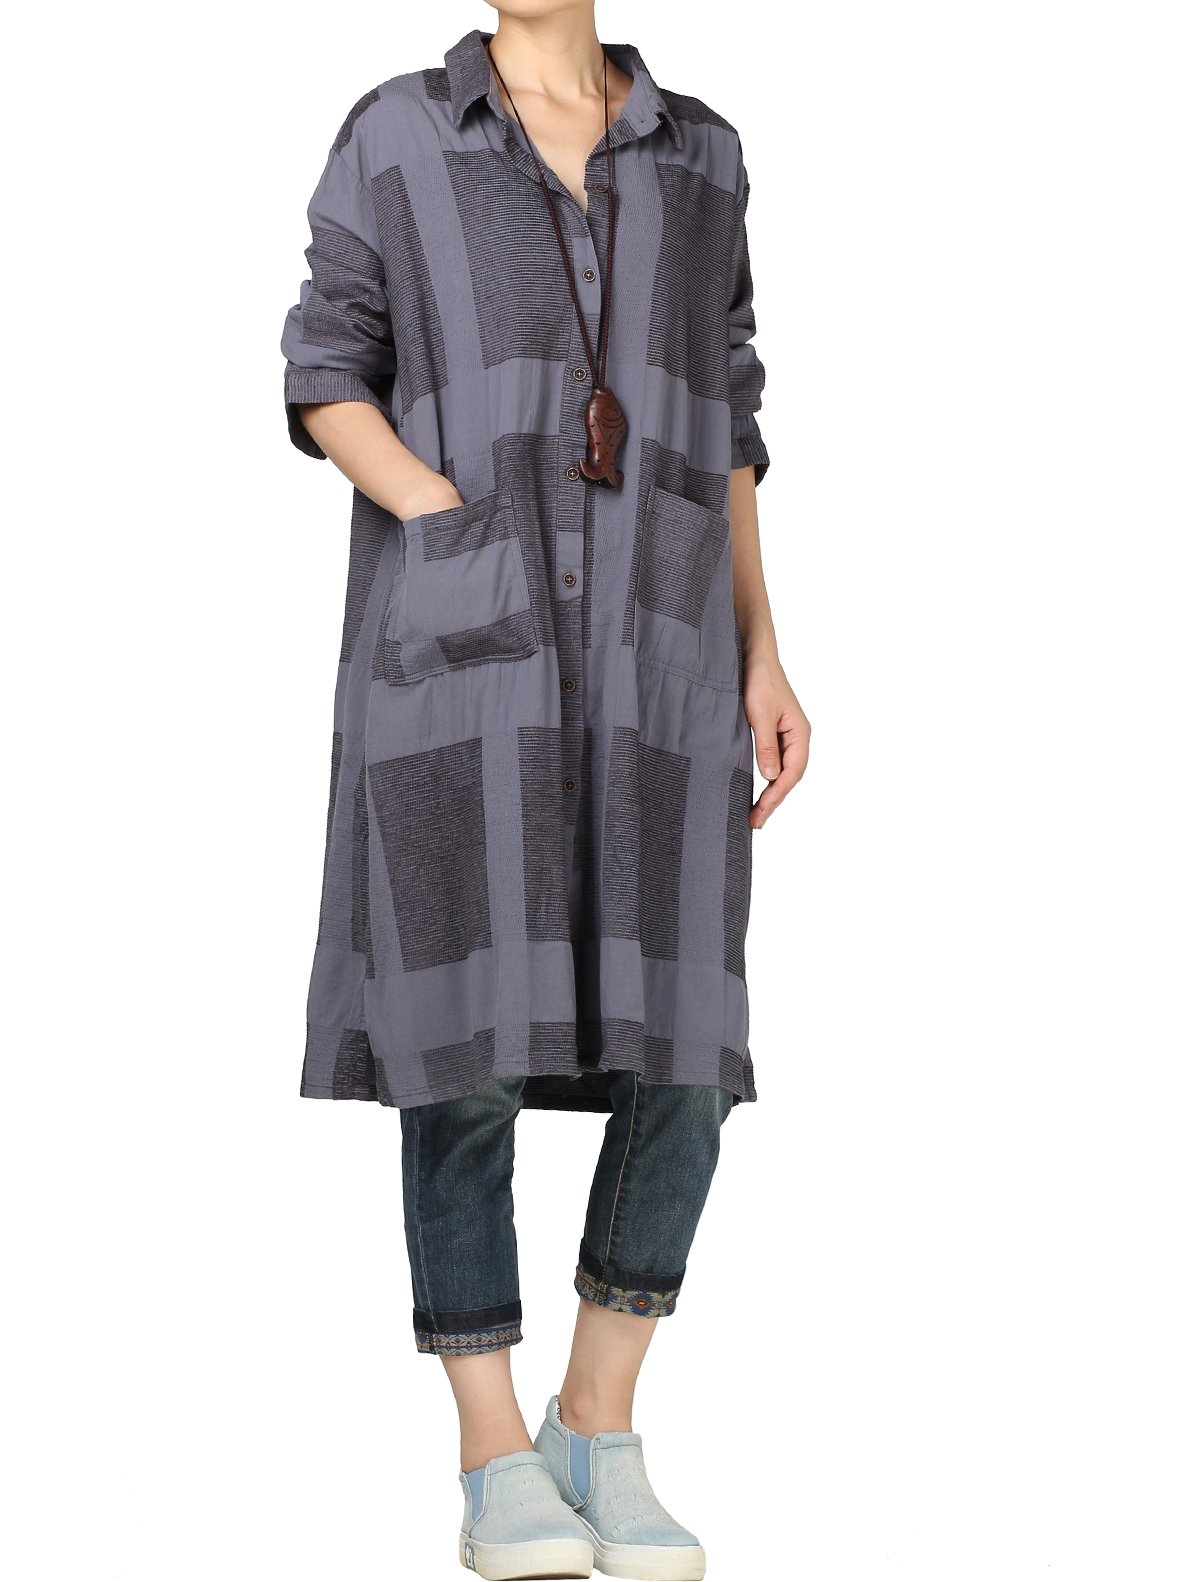 Mordenmiss Women's Plaid Long Blouse Button Down Shirt Cardigan Check Jacket L Gray